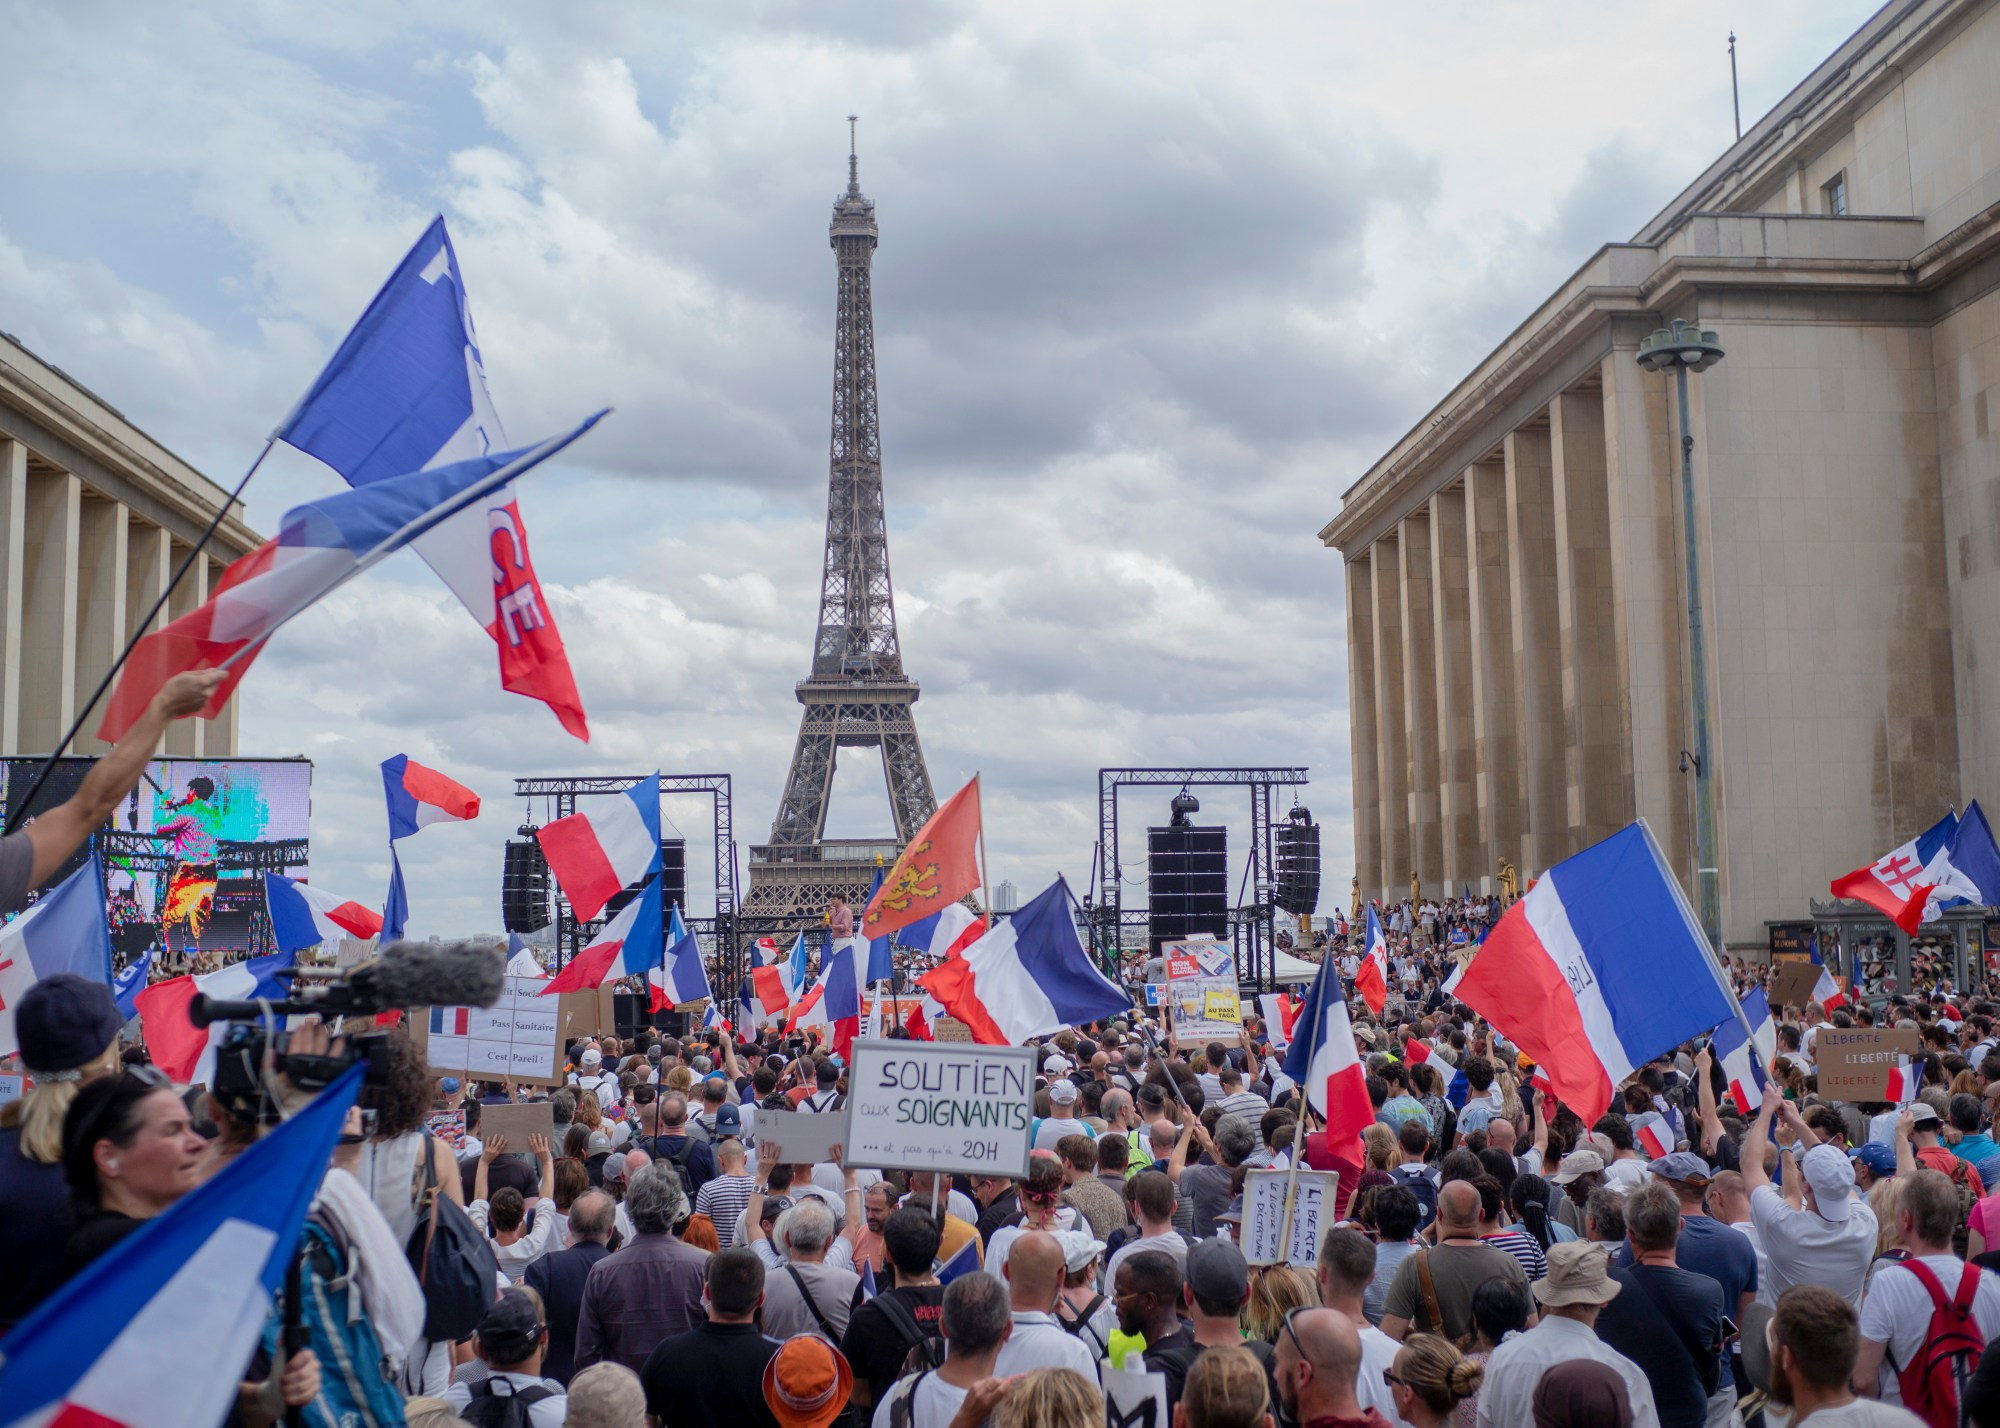 Thousands of protesters gather at Place Trocadero near the Eiffel Tower attend a demonstration in Paris, France, July 24, 2021, against the COVID-19 pass which grants vaccinated individuals greater ease of access to venues. (AP Photo/Rafael Yaghobzadeh)